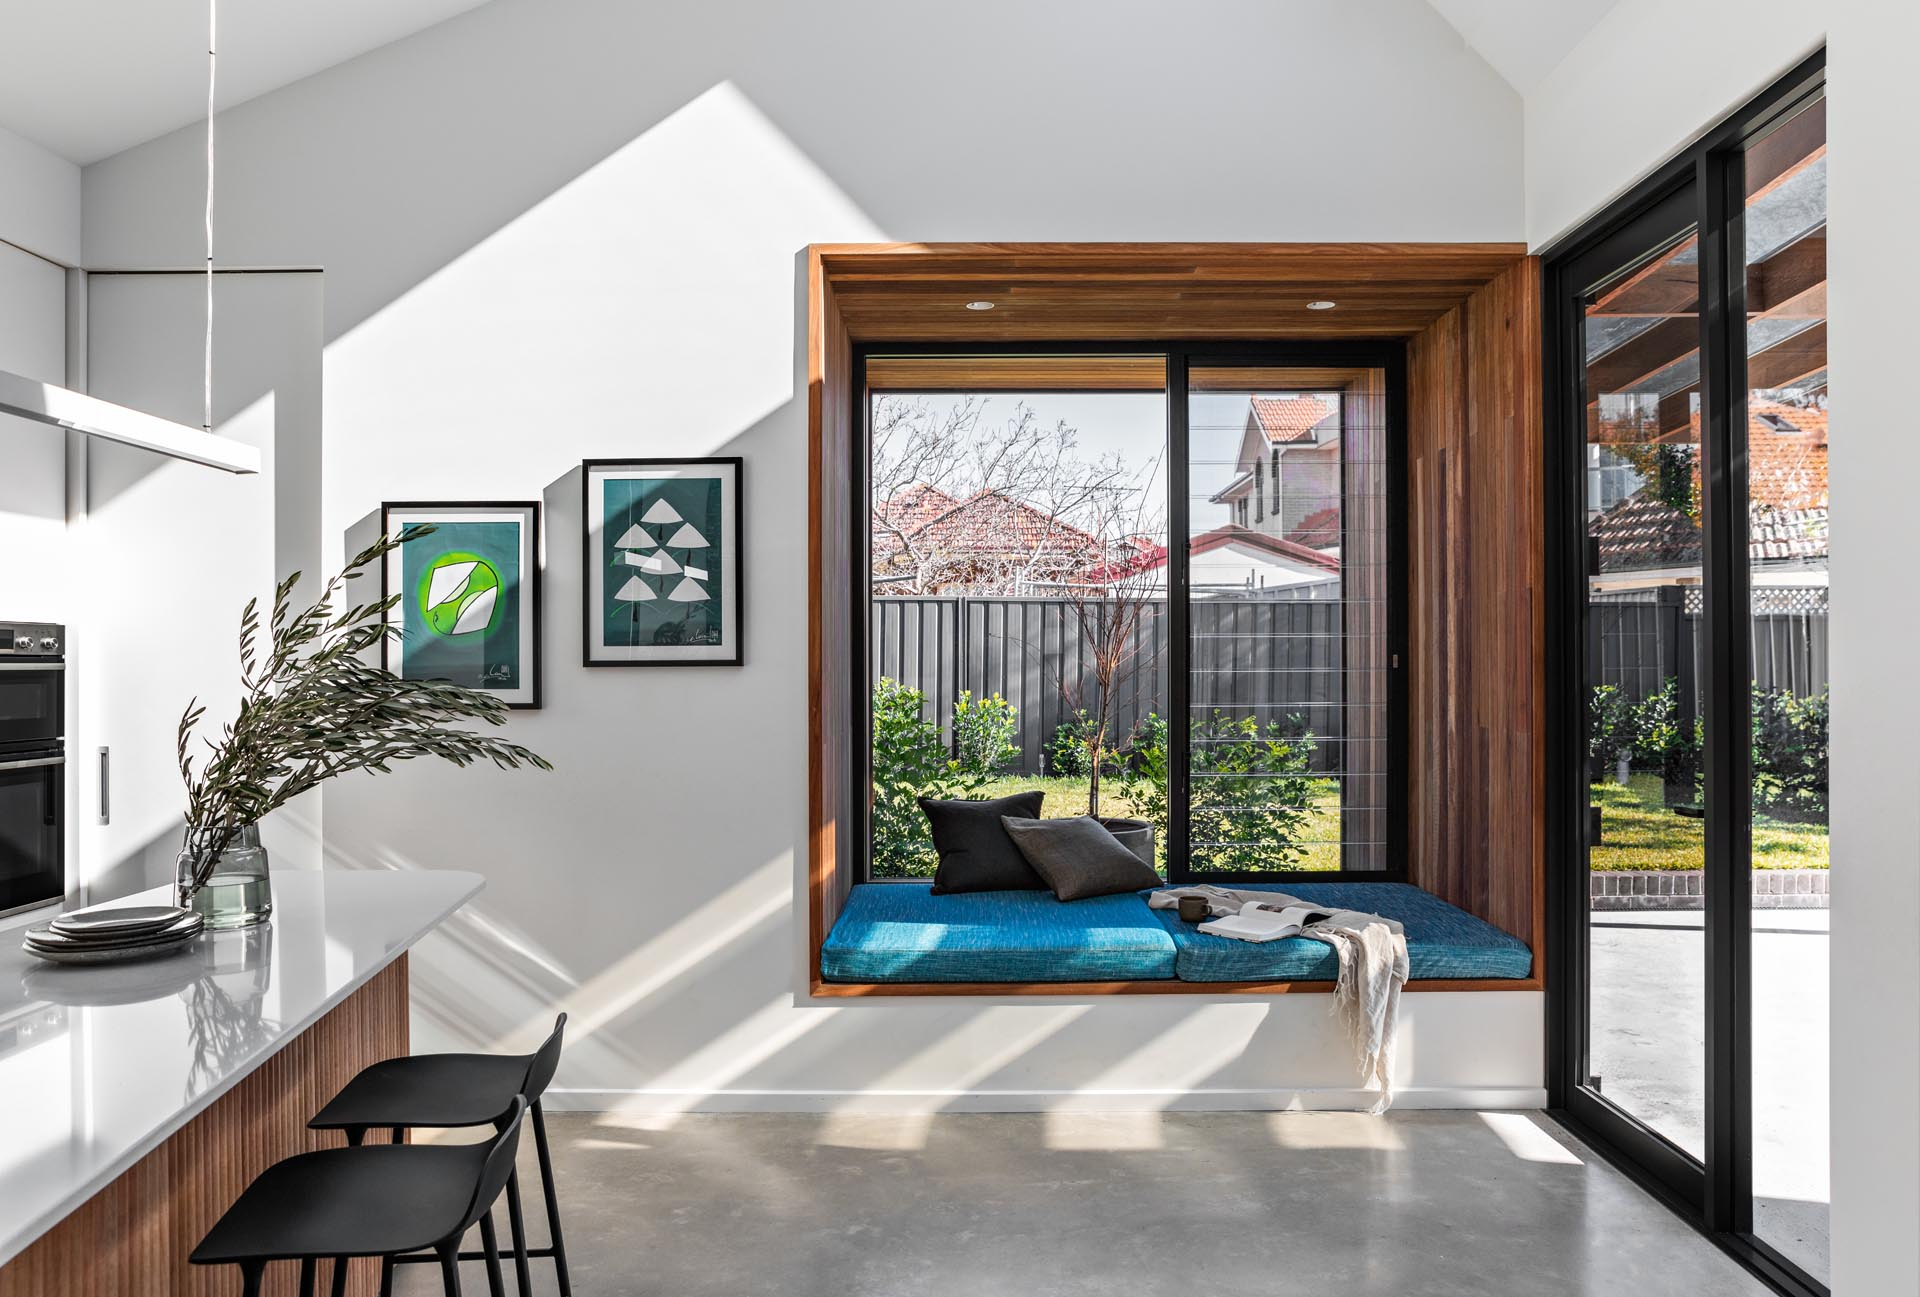 A large square timber-lined window box seat with blue upholstered cushion, that extends the view out to the garden.